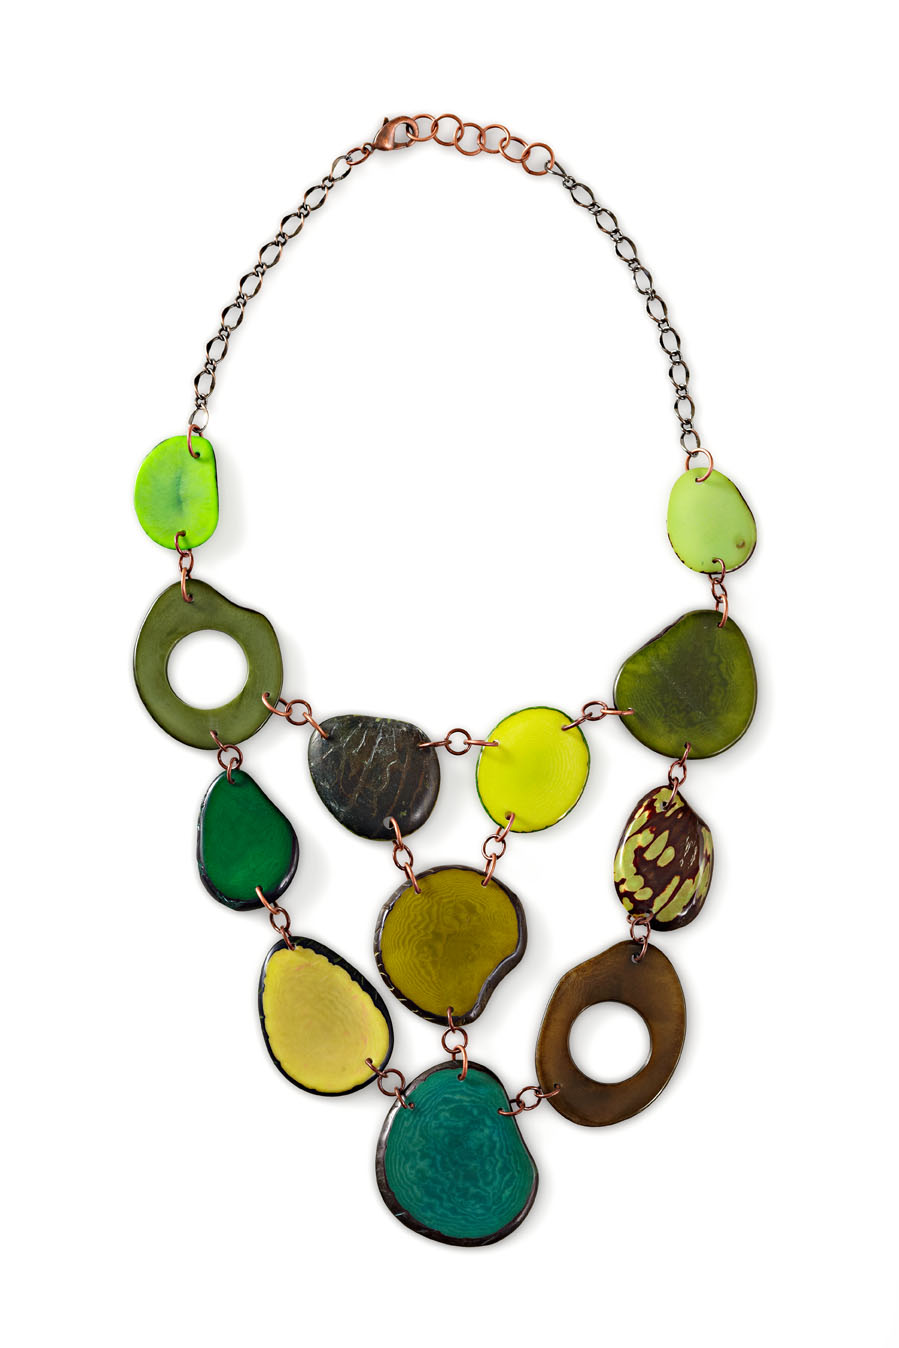 Veronica Riley Martens tagua necklace